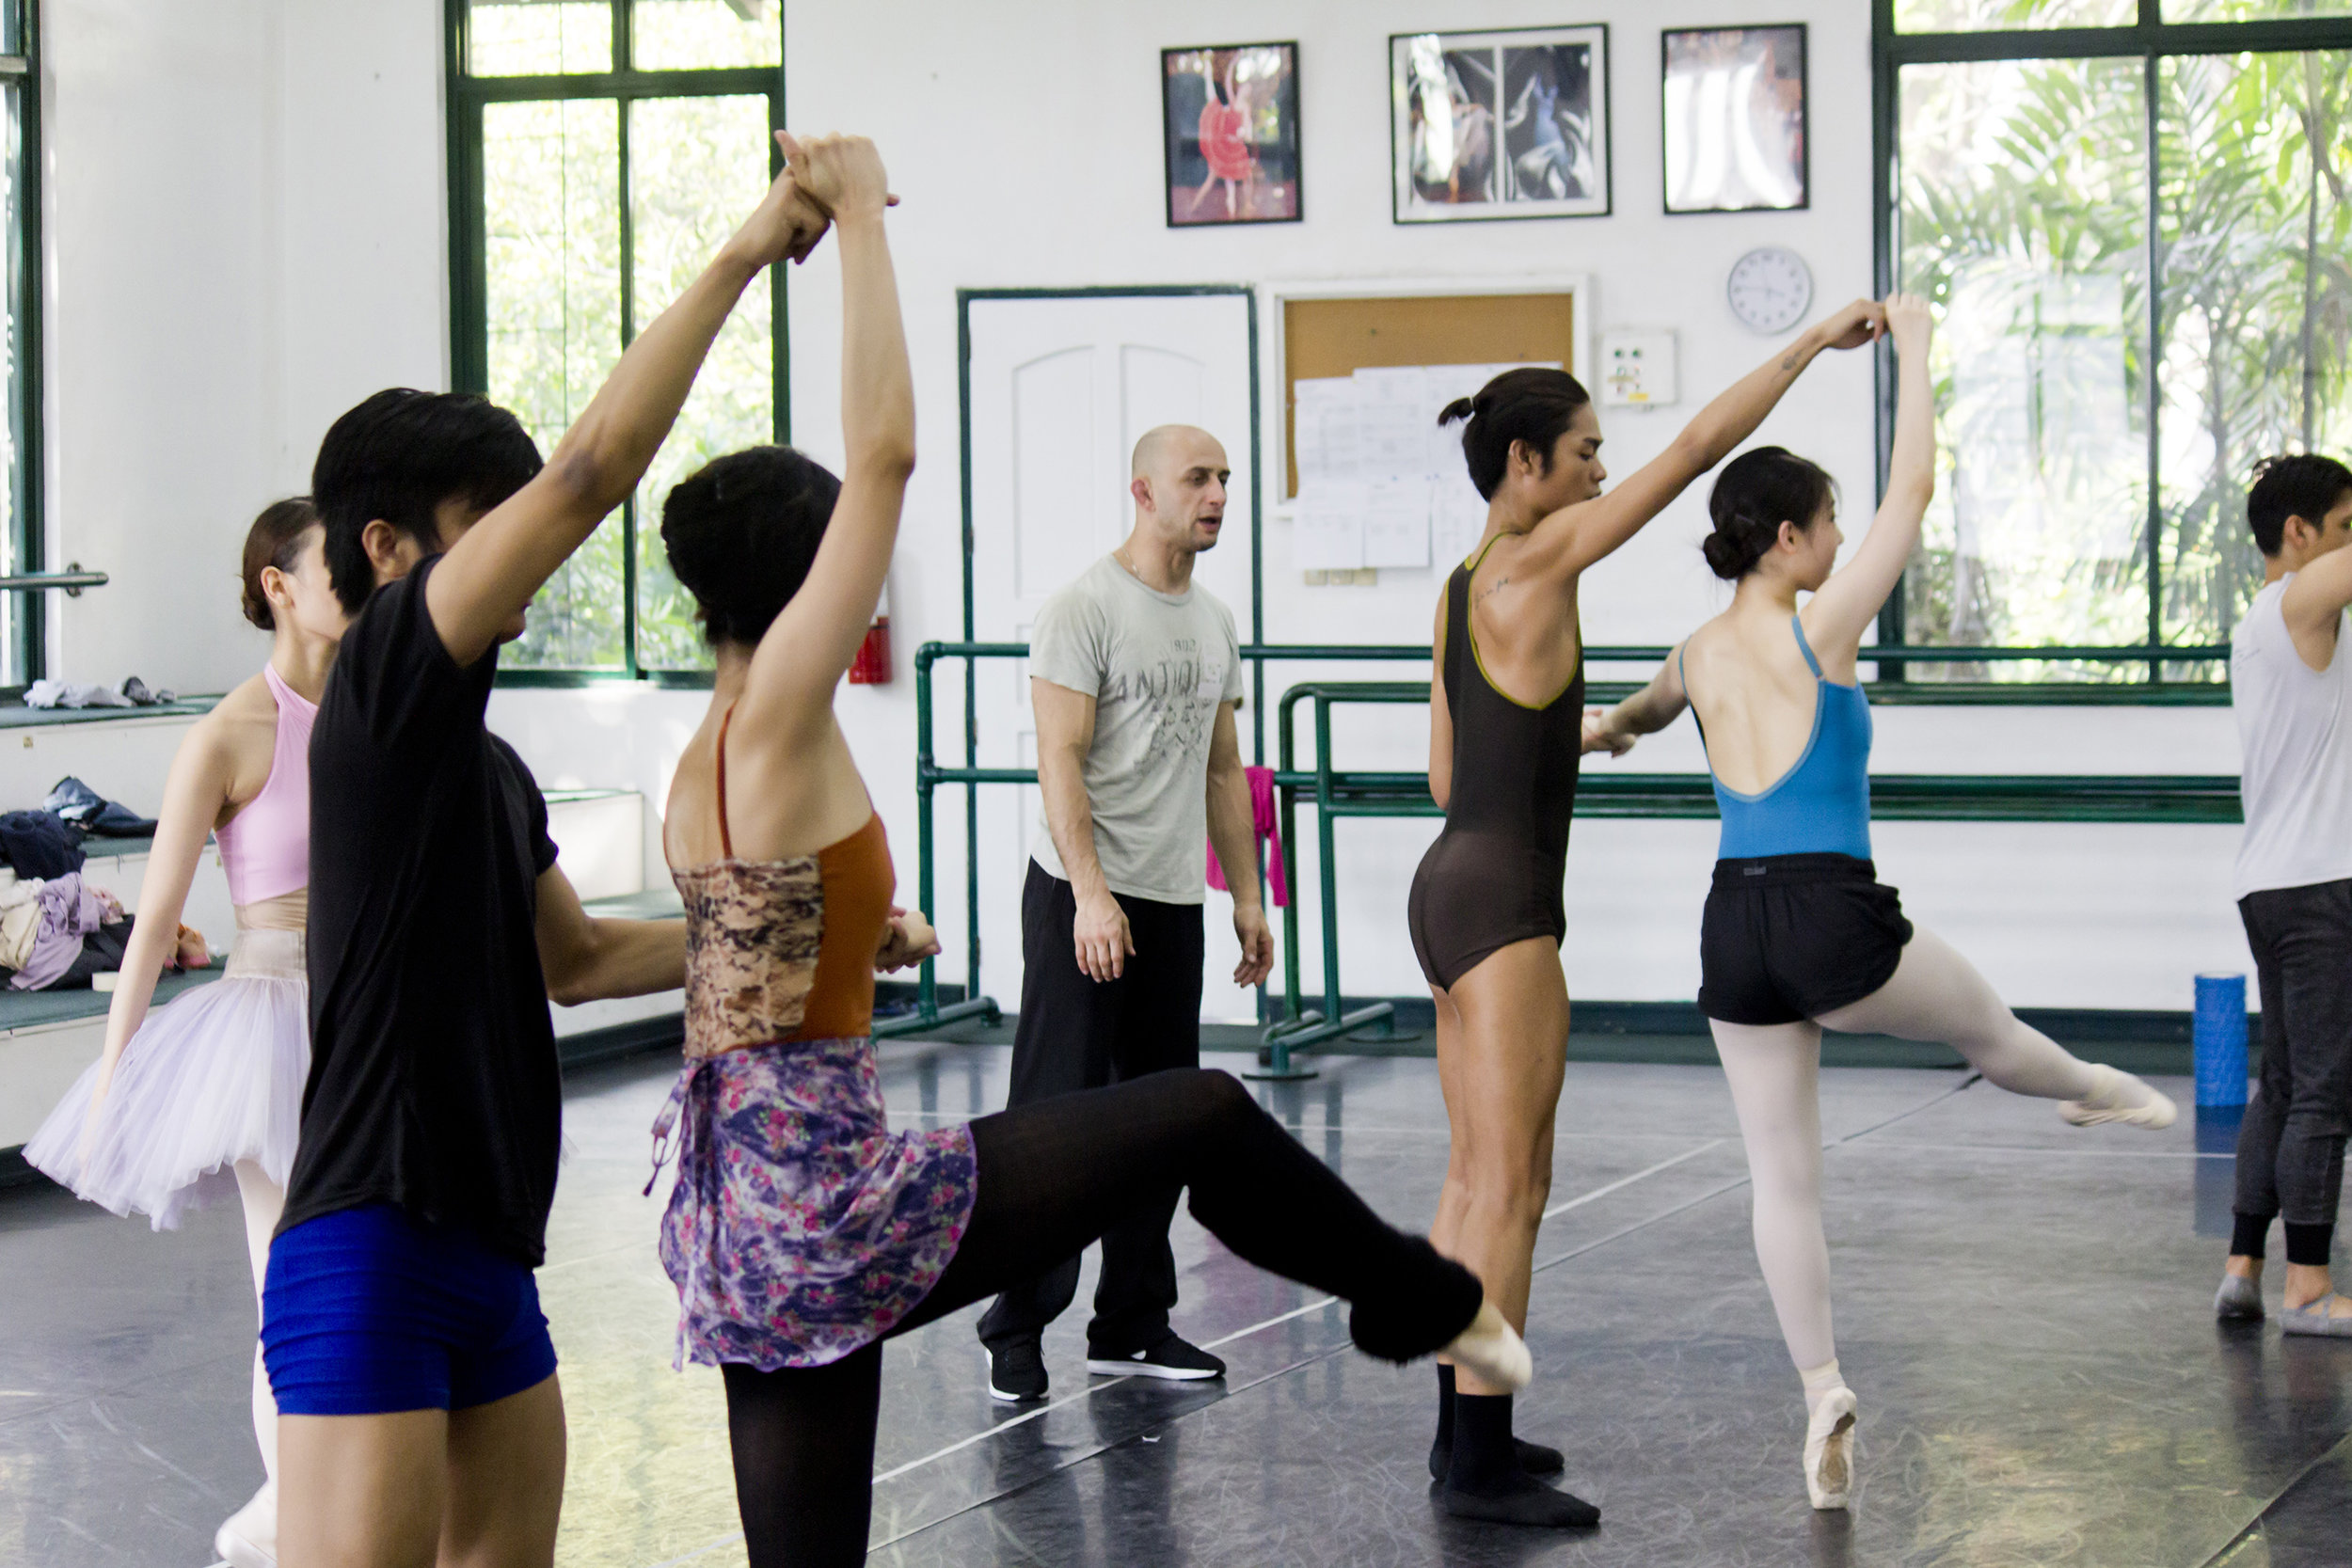 George Birkadze (center) rehearses    Imperial    with Ballet Manila dancers. He describes the piece as having lots of strong jumps, difficult partnering, and fast movement. Photo by Jimmy Villanueva